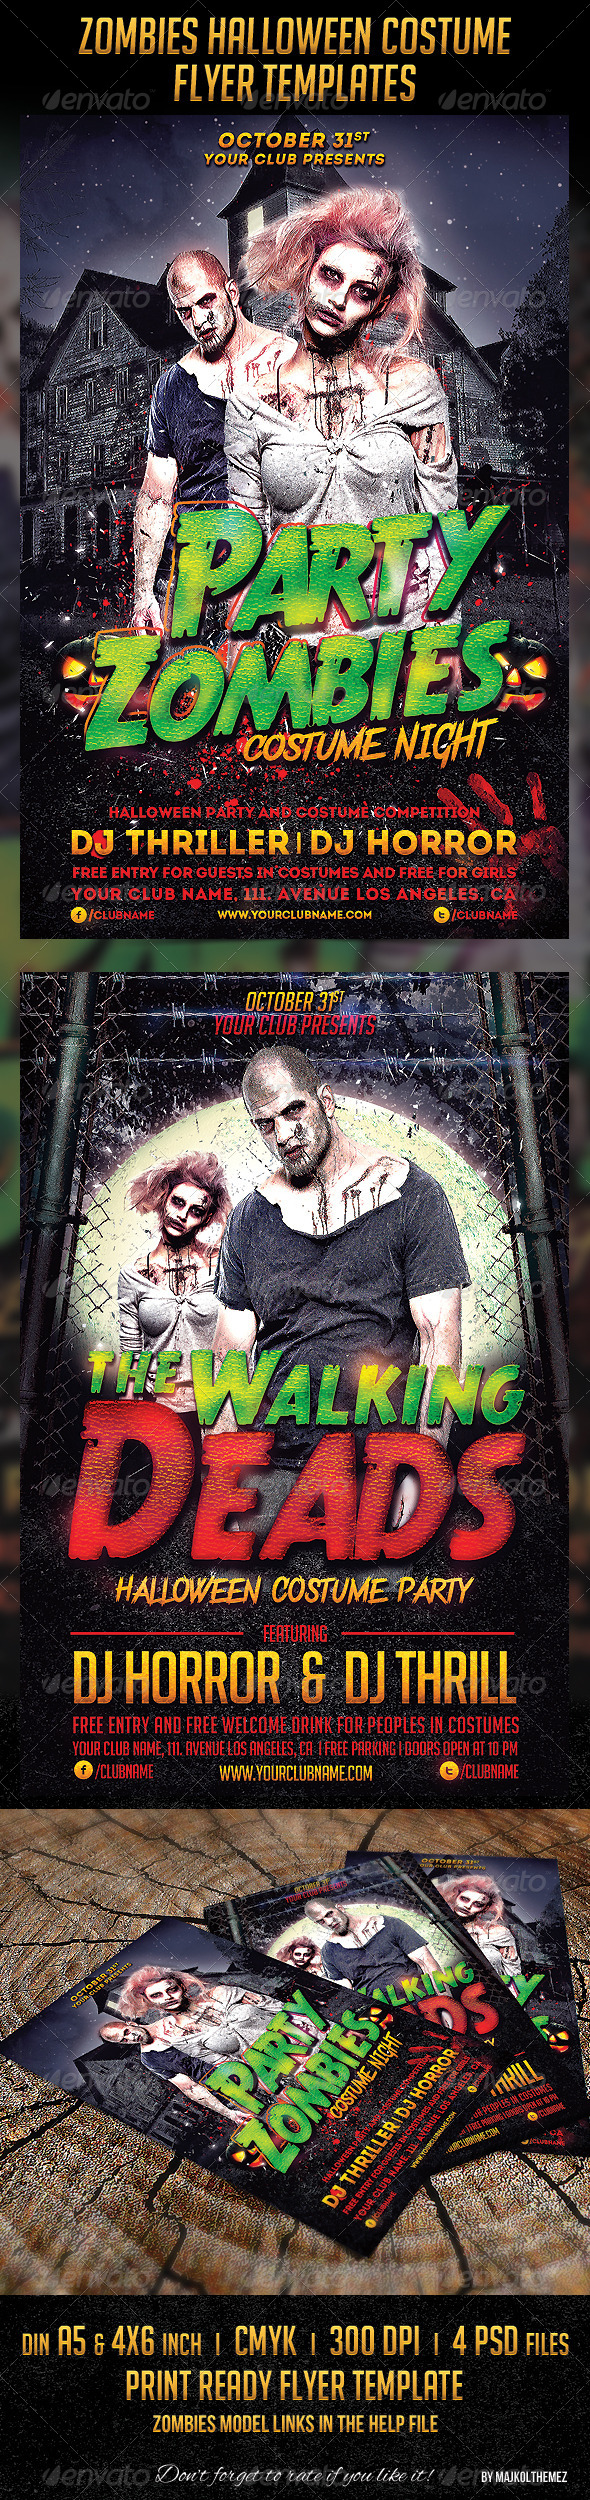 GraphicRiver Zombies Halloween Costume Flyers 5741947